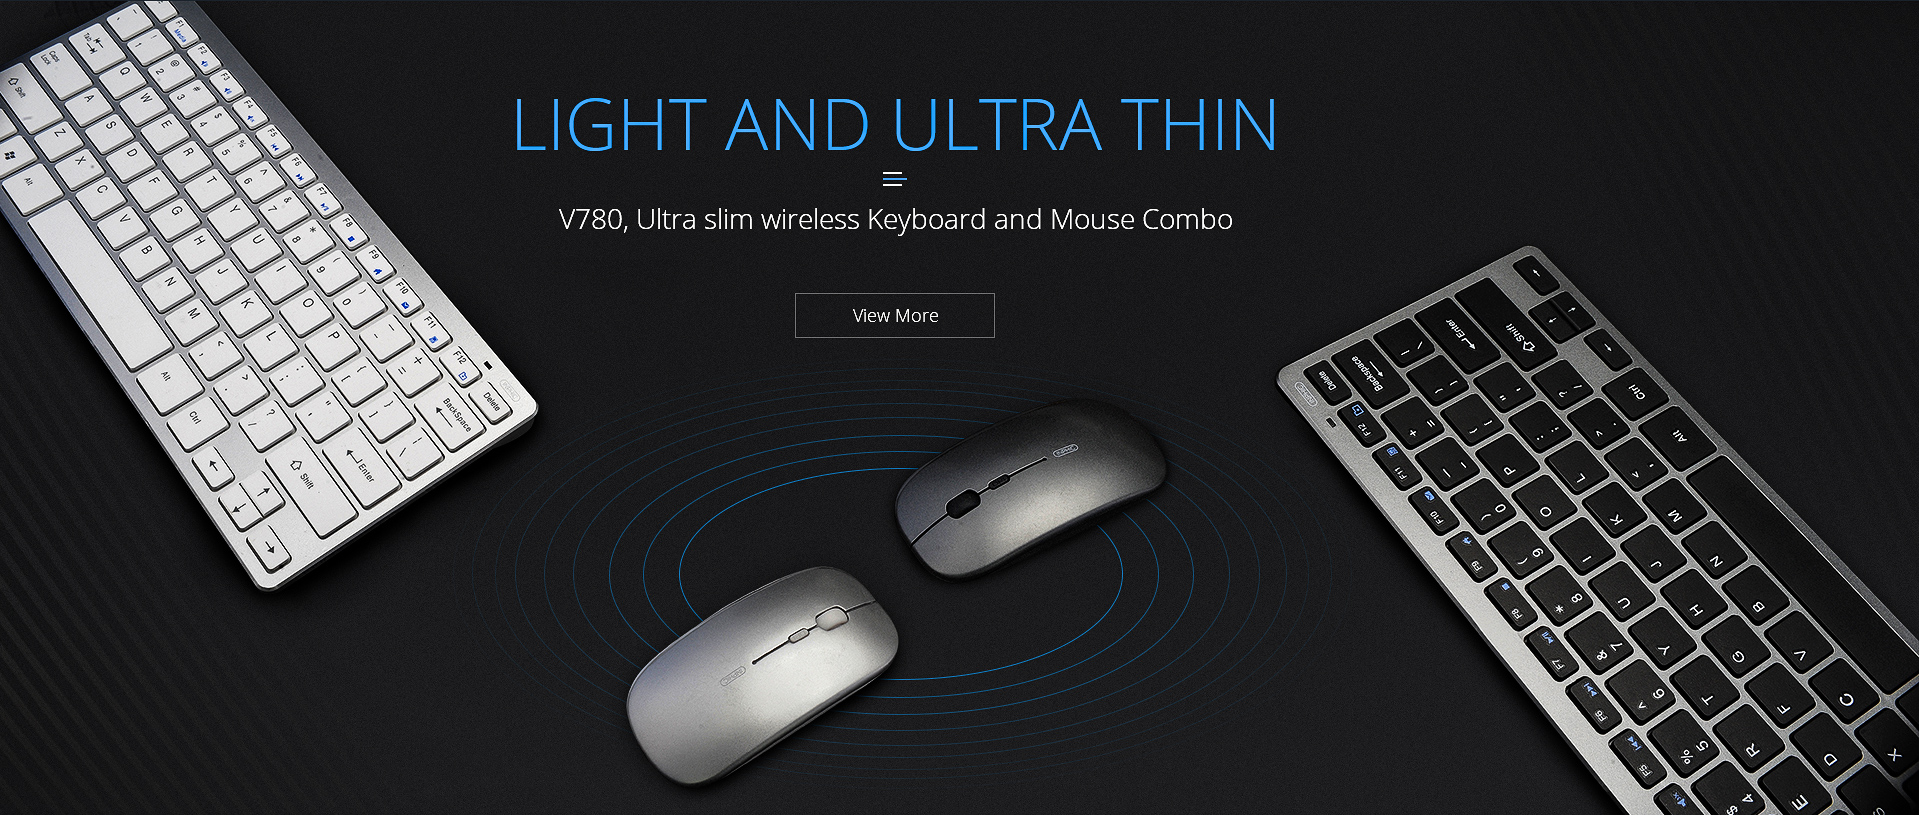 inphic keyboard and mouse combo